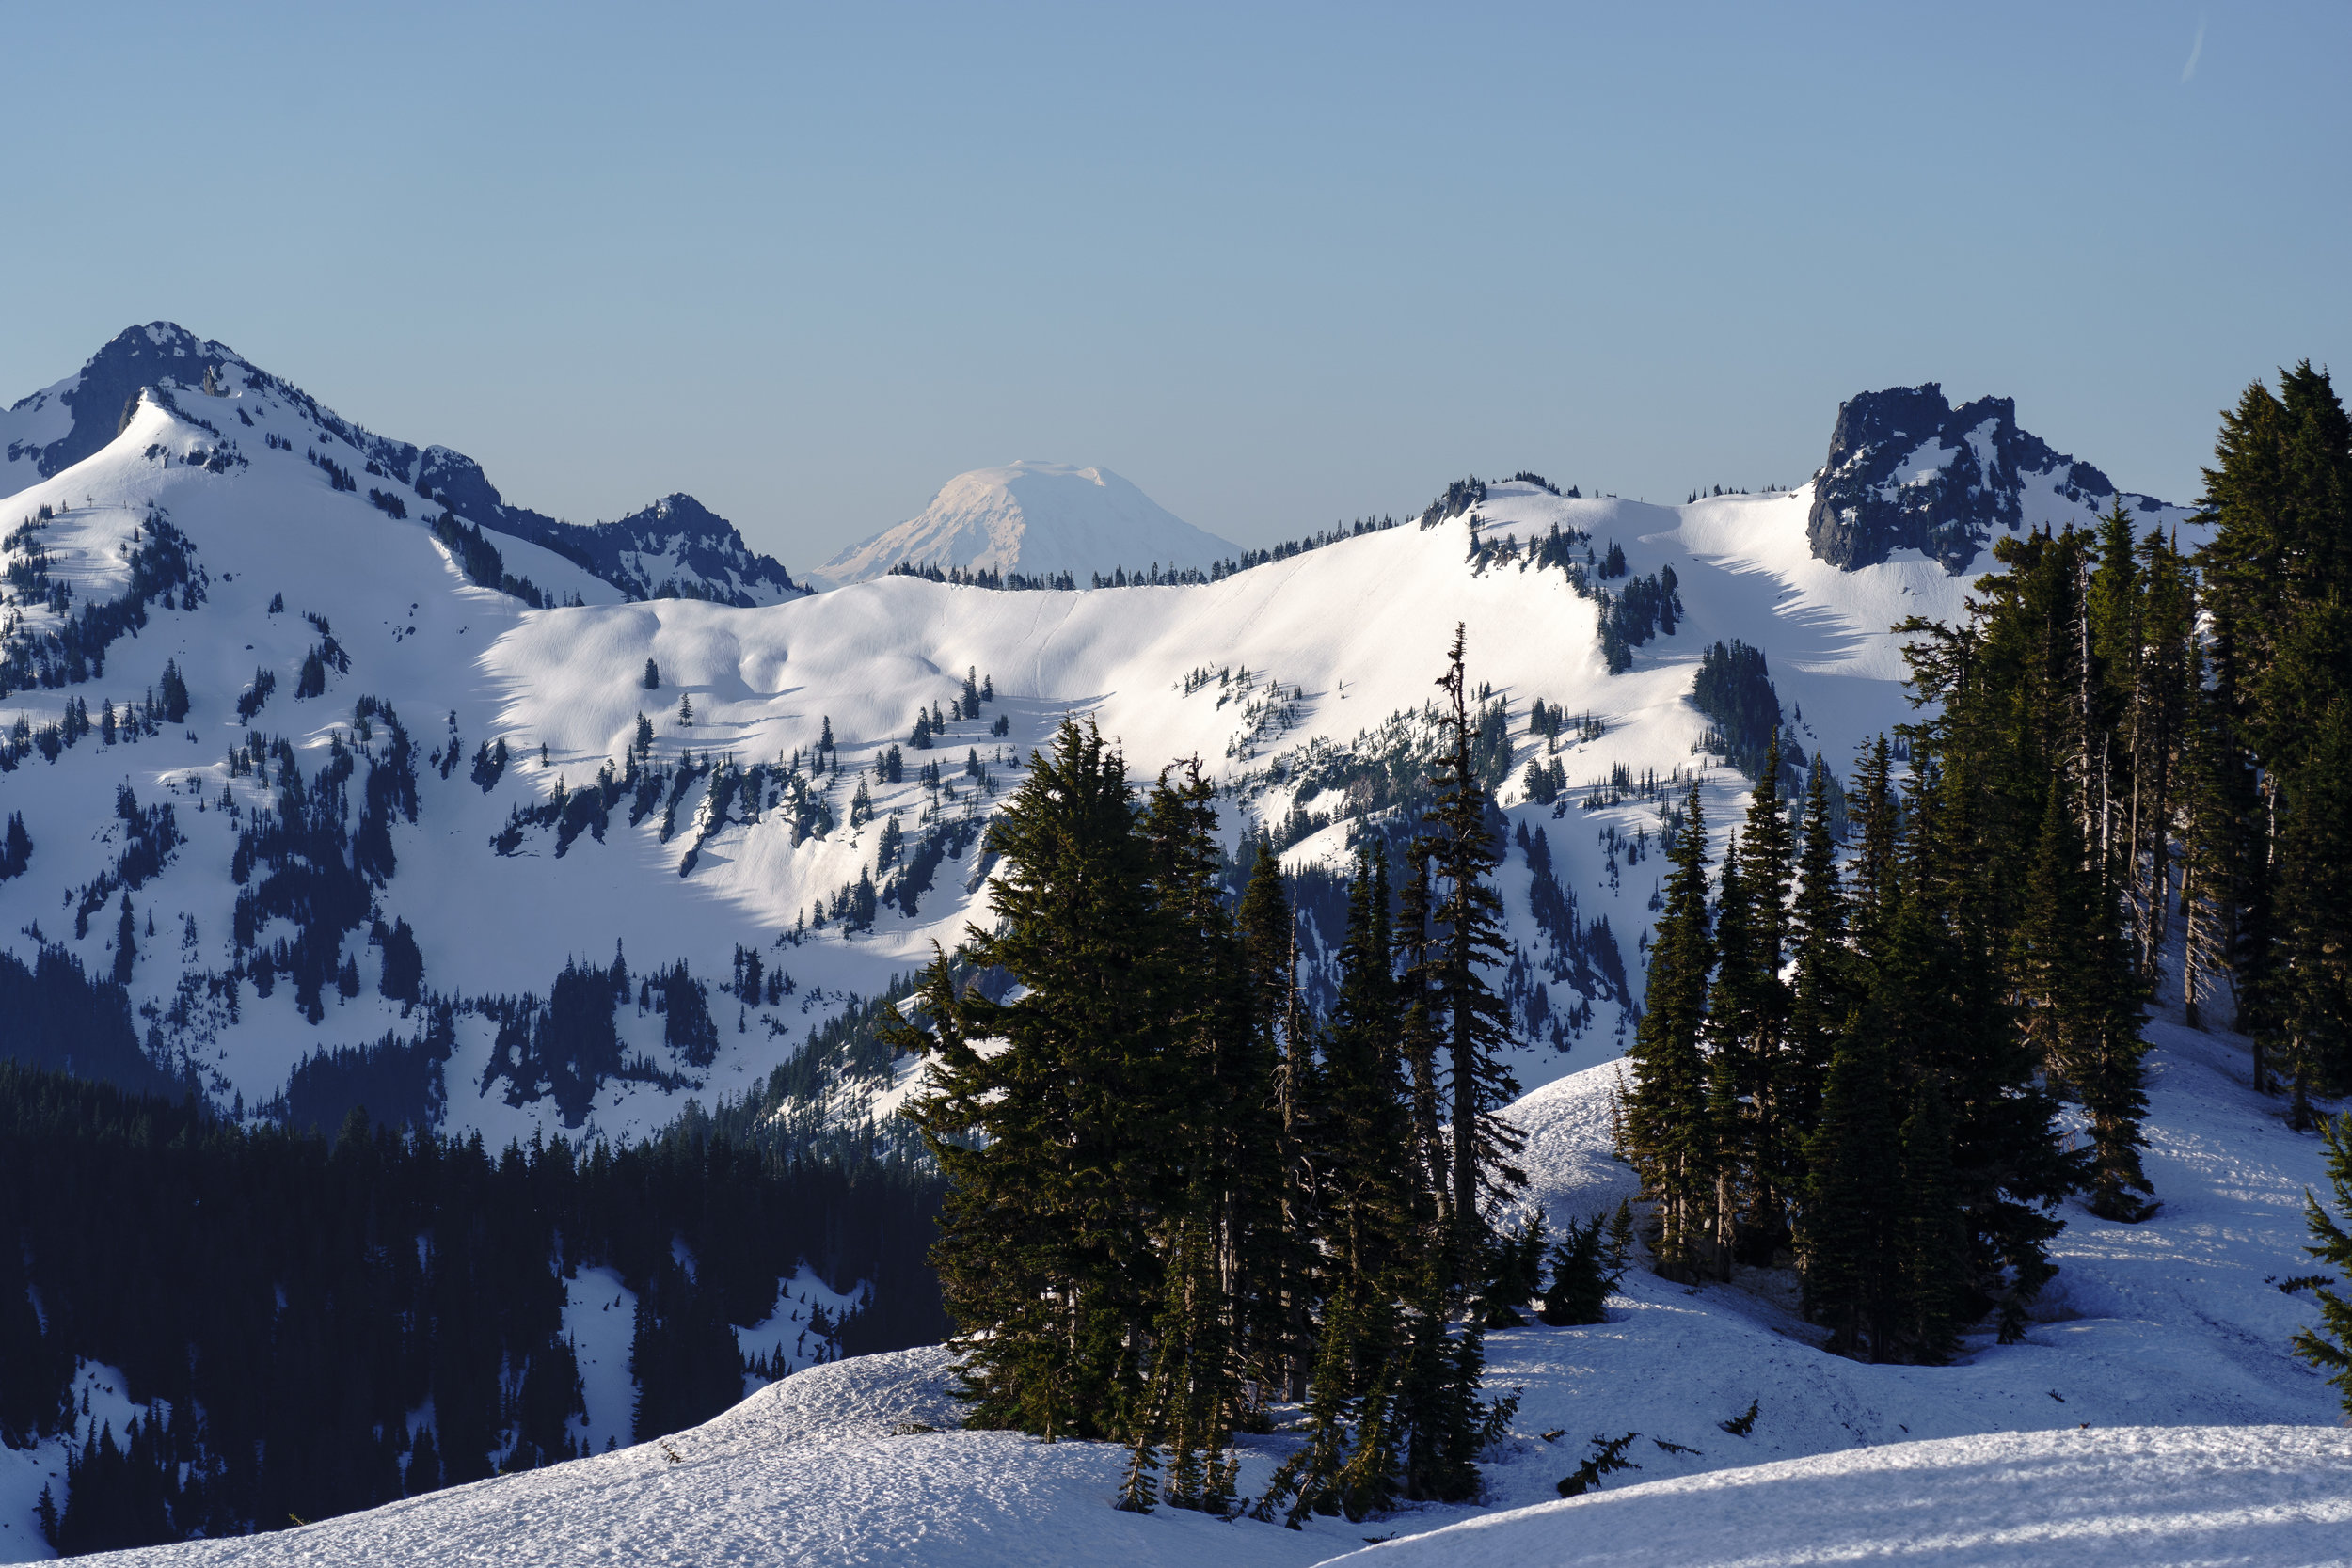 Mt. Adam's peaking out over the Tatoosh